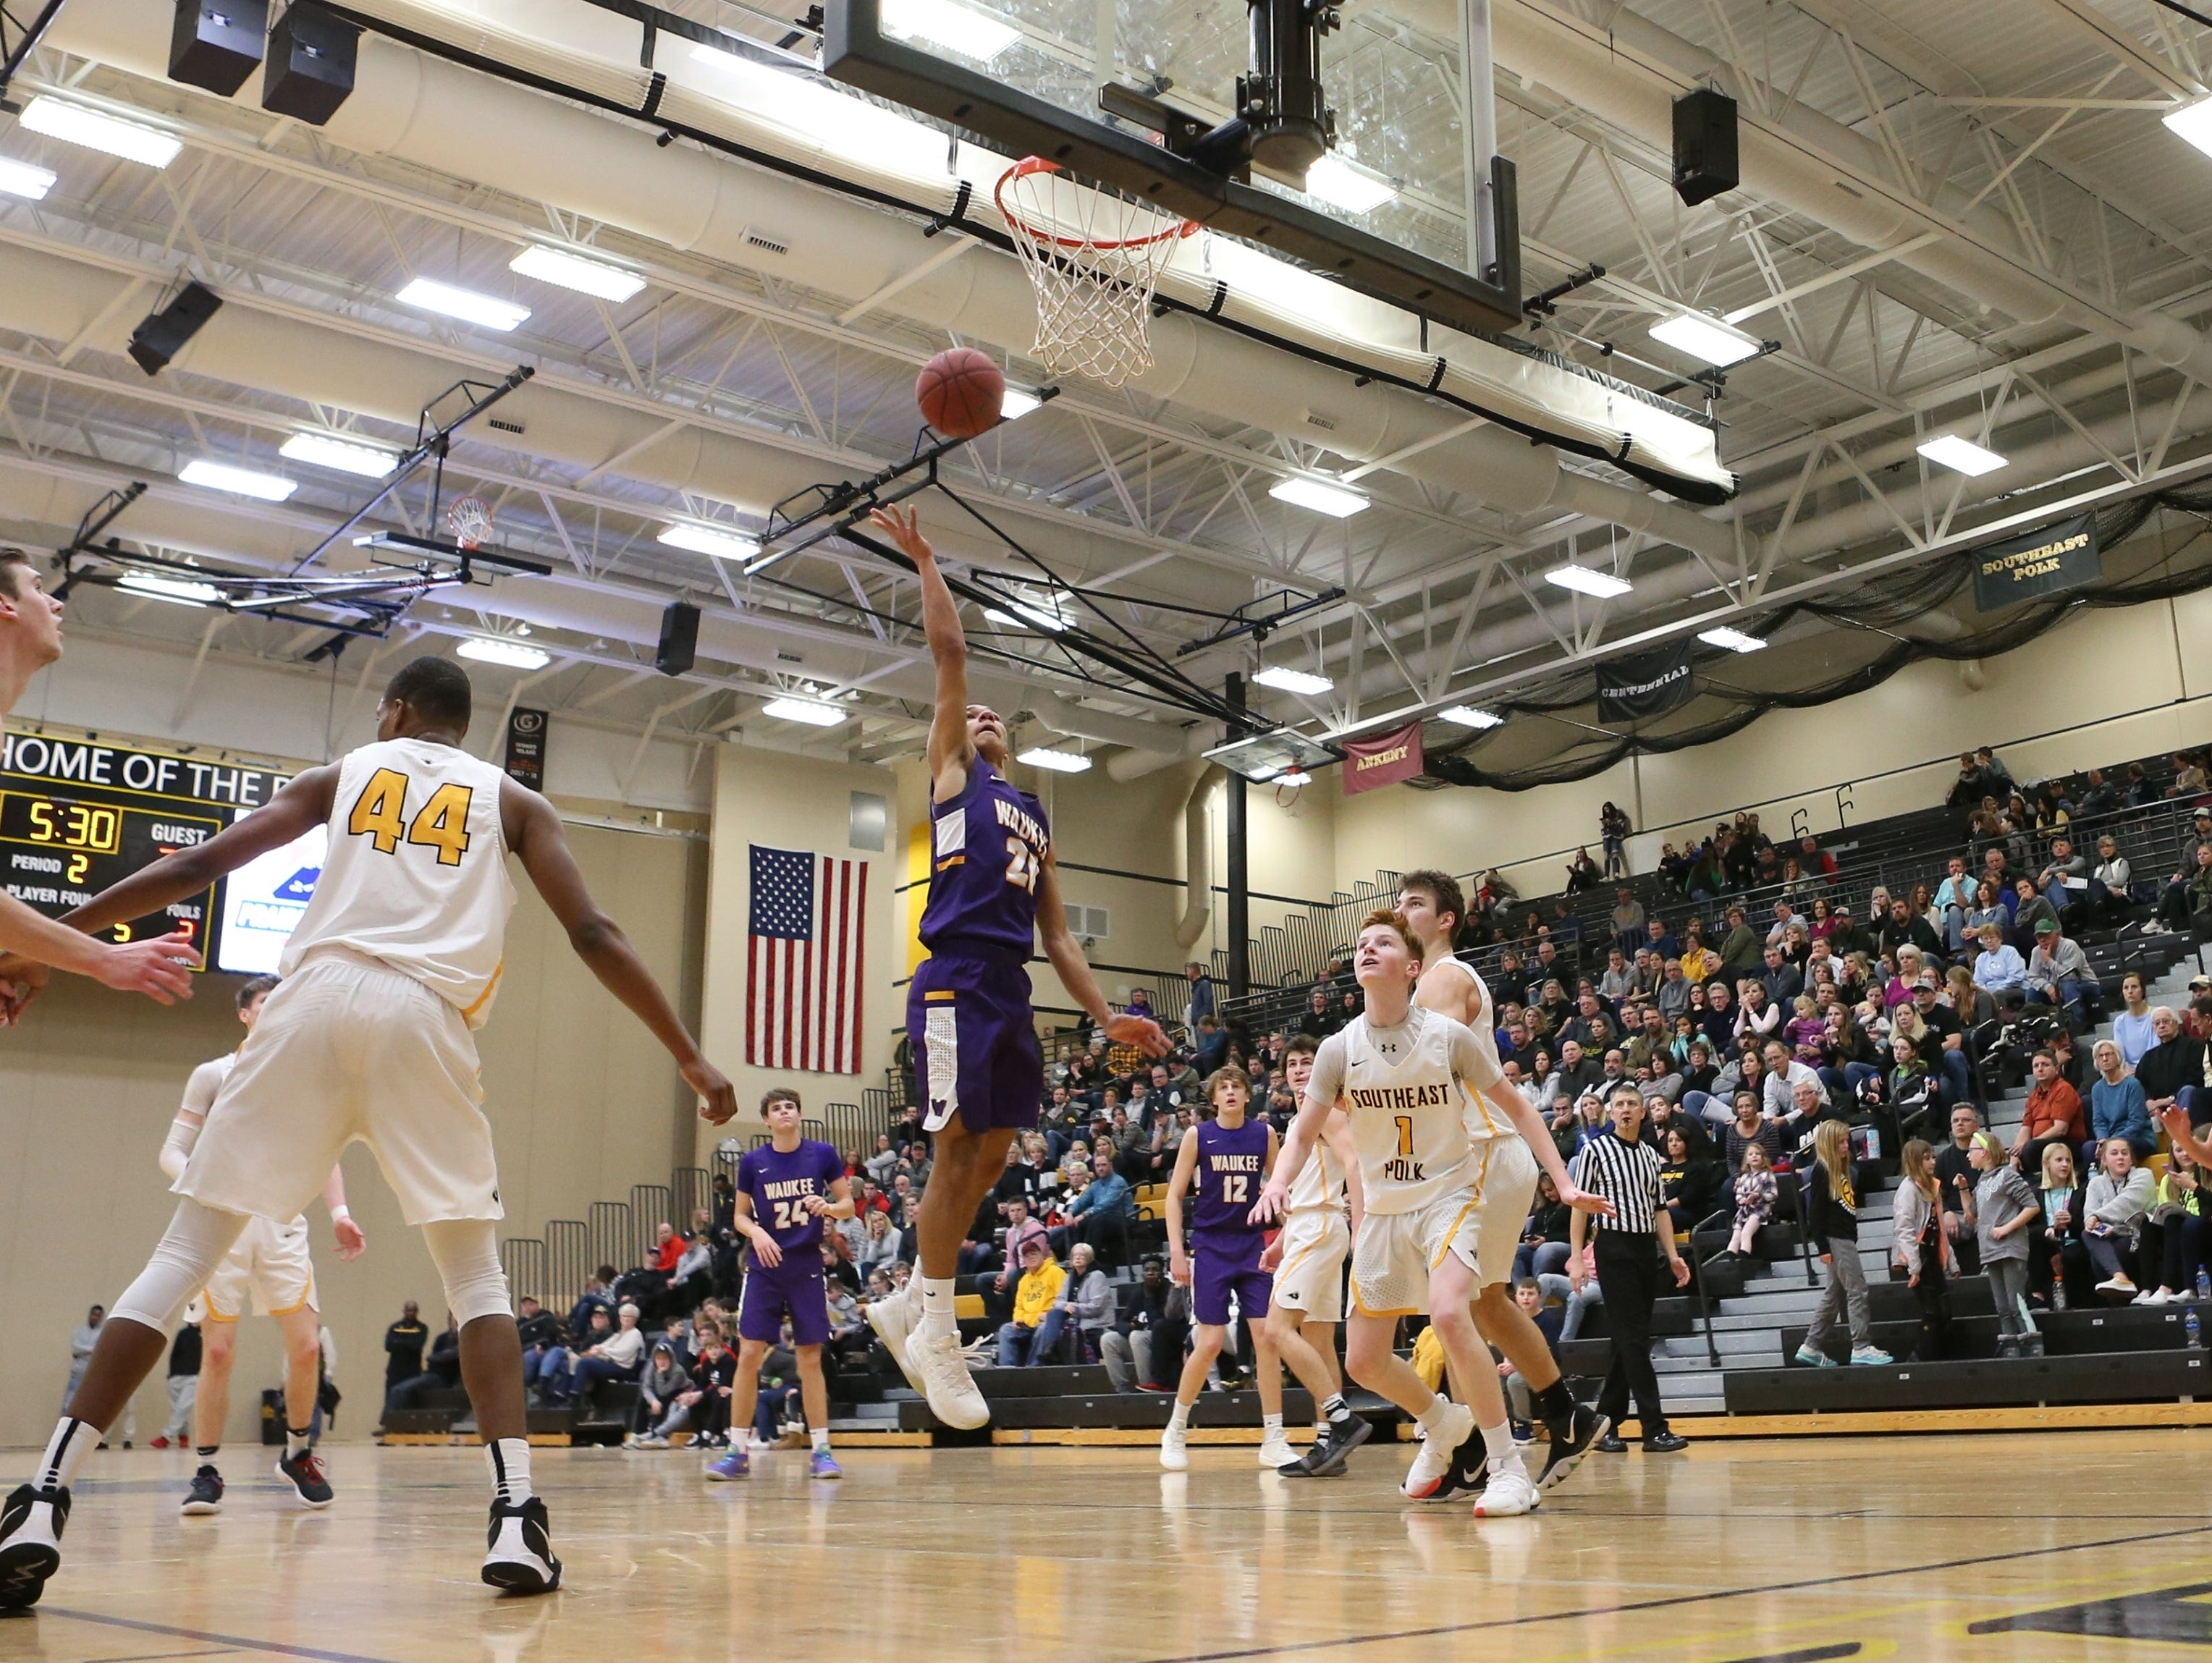 Waukee Warriors' Dante Jenkins (20) scores in the paint against the Southeast Polk Rams during a game on Feb. 1, 2019 at Southeast Polk High School. Waukee won the game 65 to 48.